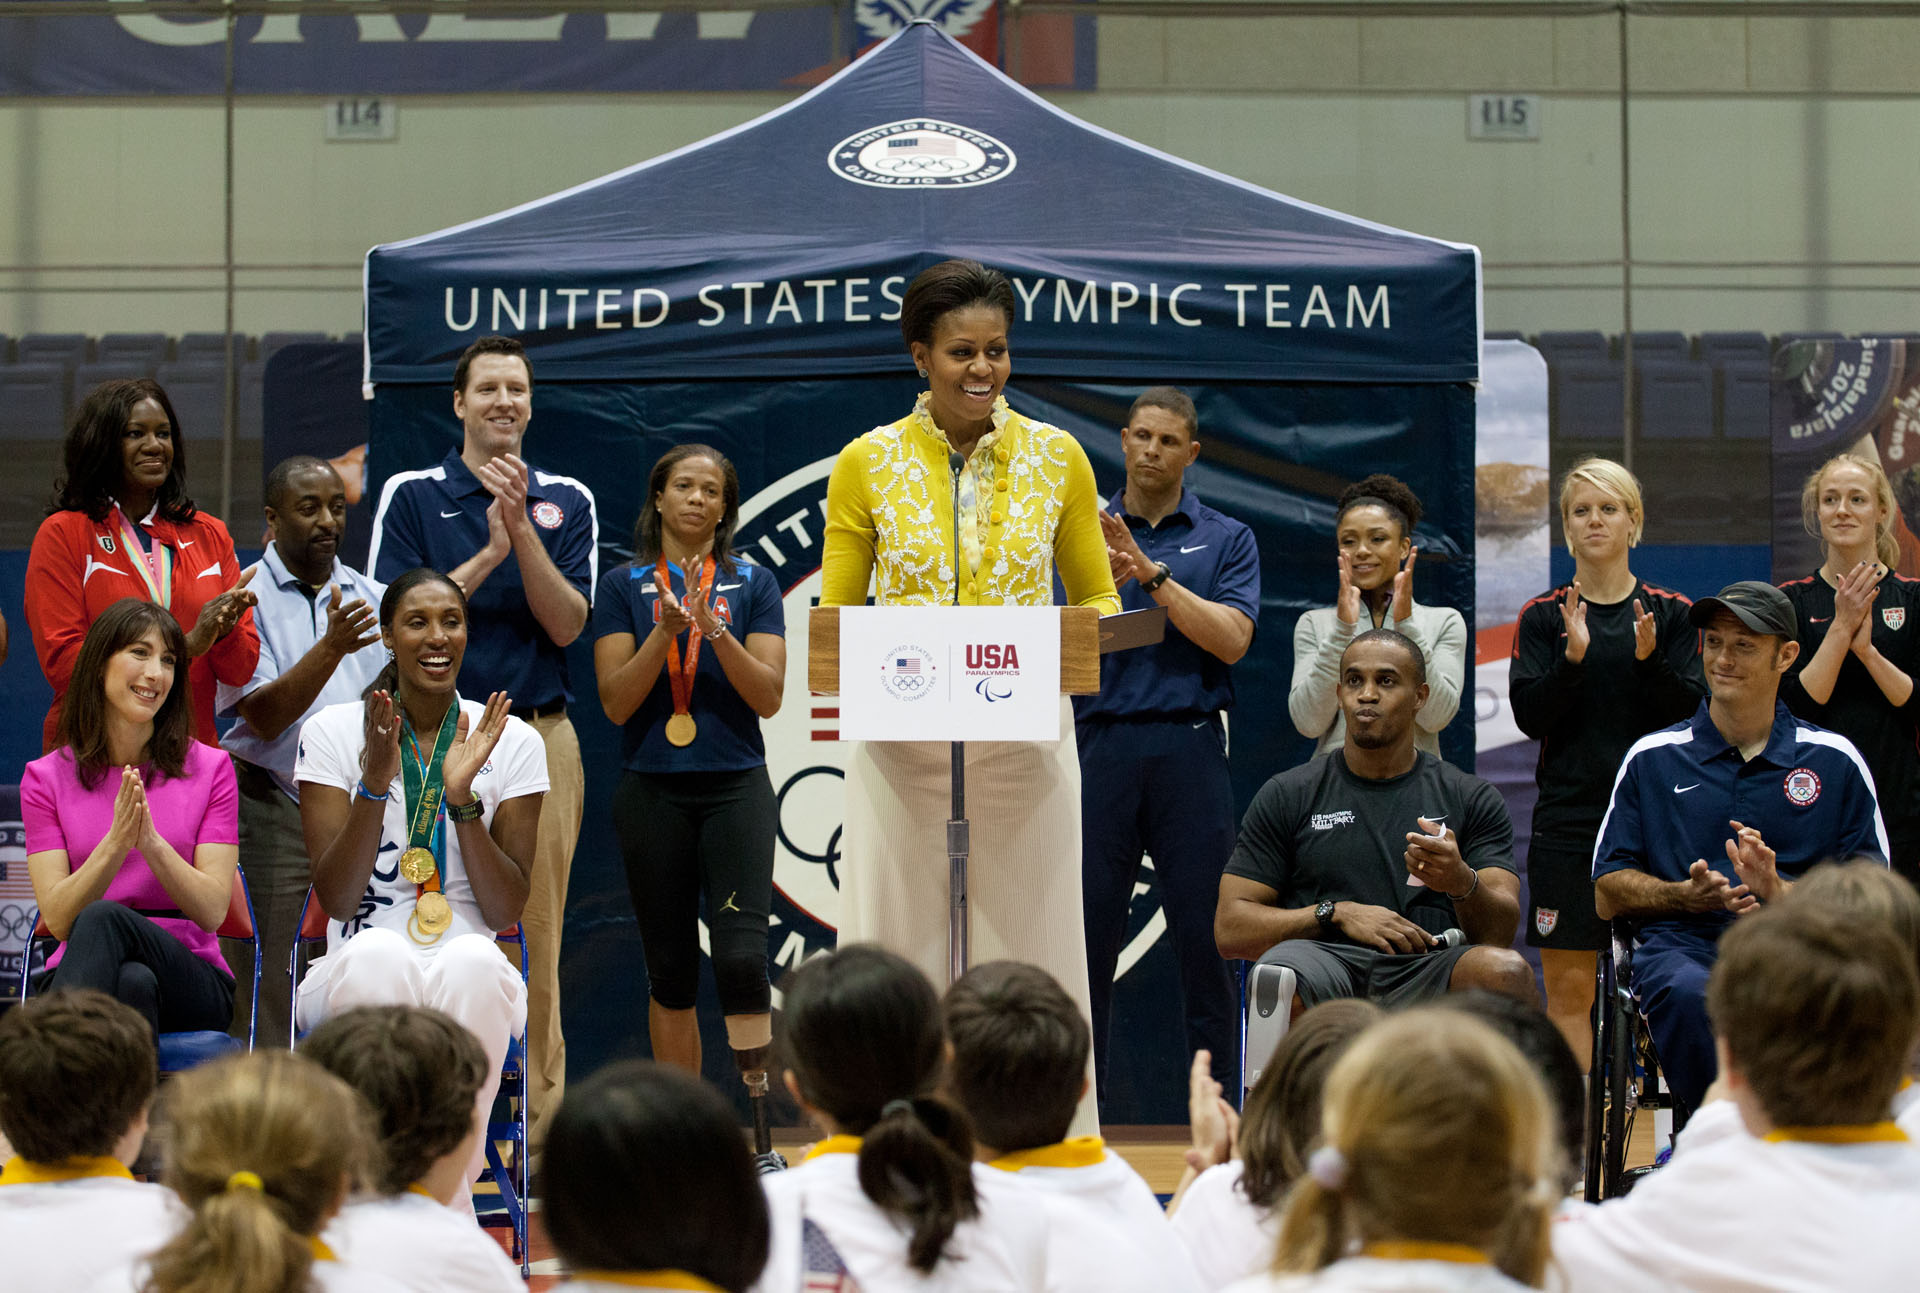 First Lady Michelle Obama delivers remarks during a mini-Olympics event at American University